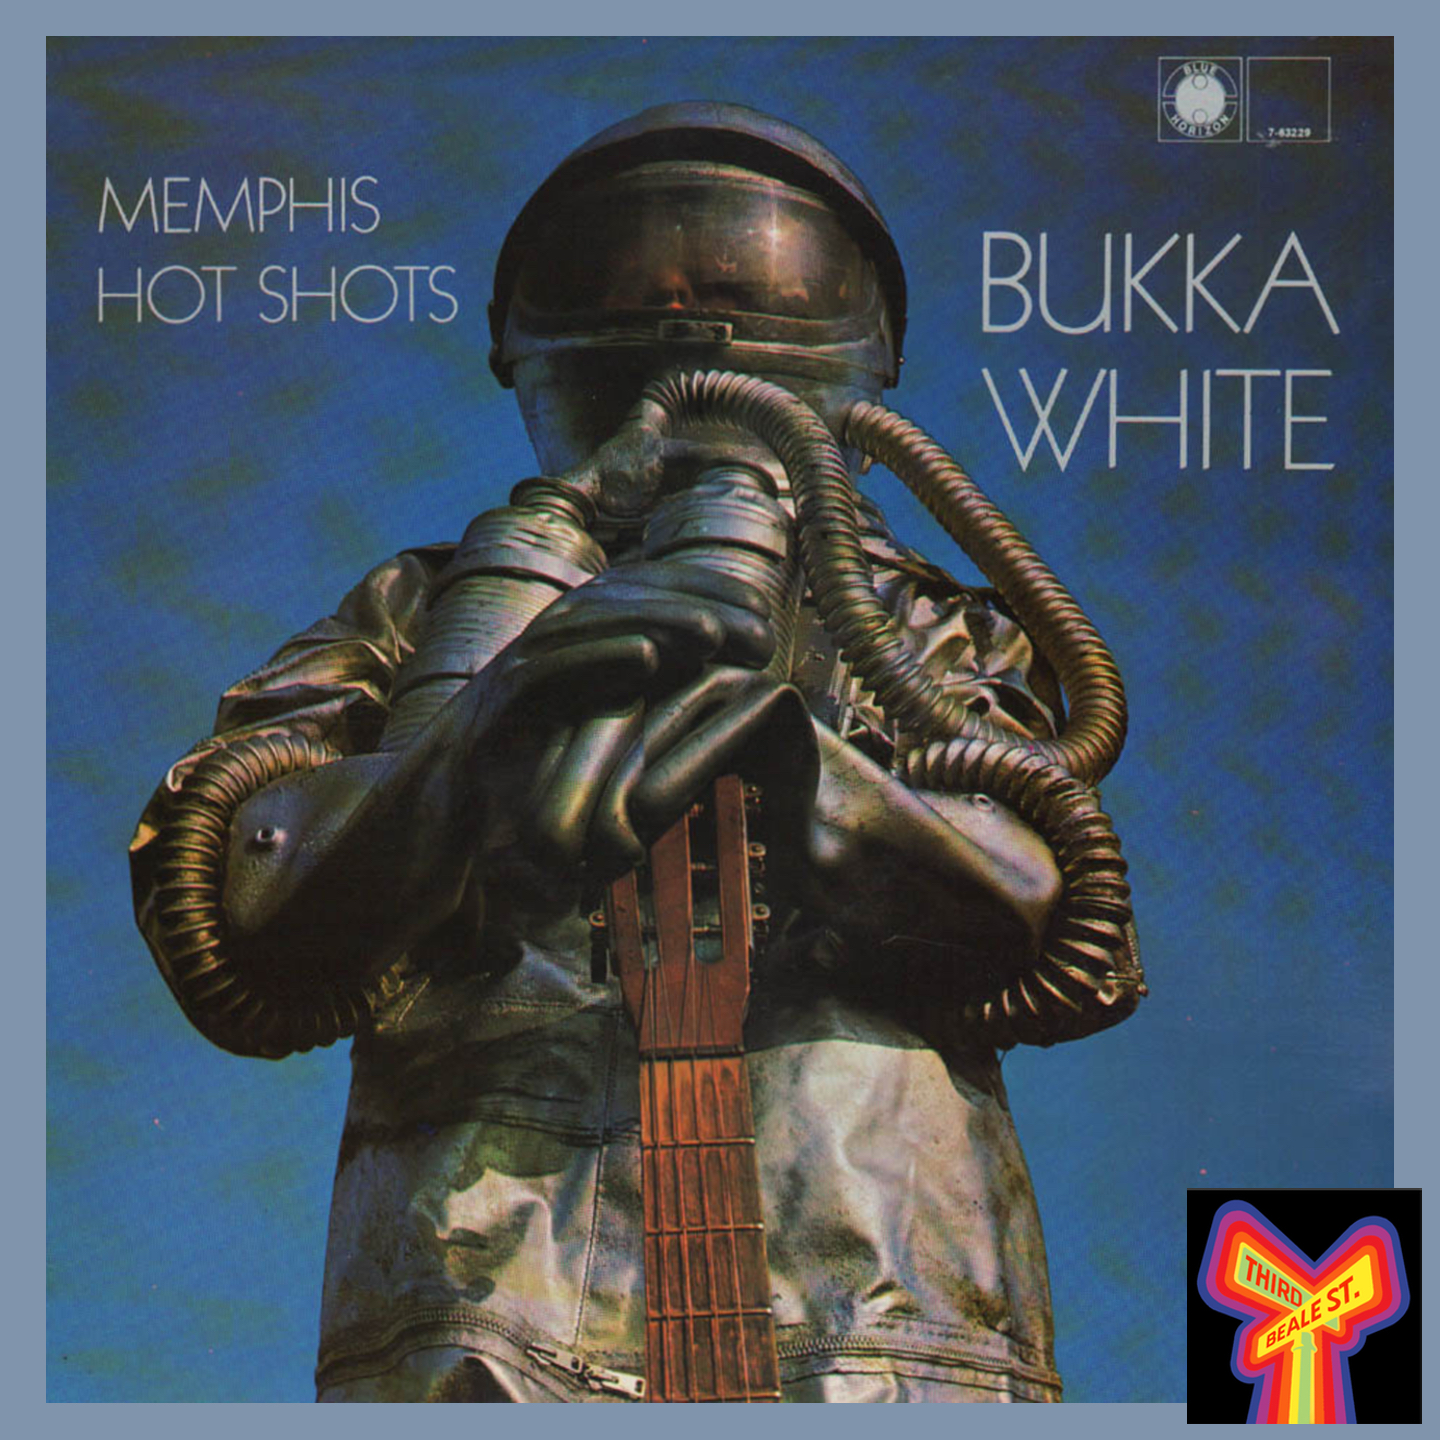 """Caption: Blue Horizon often featured striking and distinctive album covers, such as this one for Bukka White's """"Memphis Hot Shots"""" LP."""